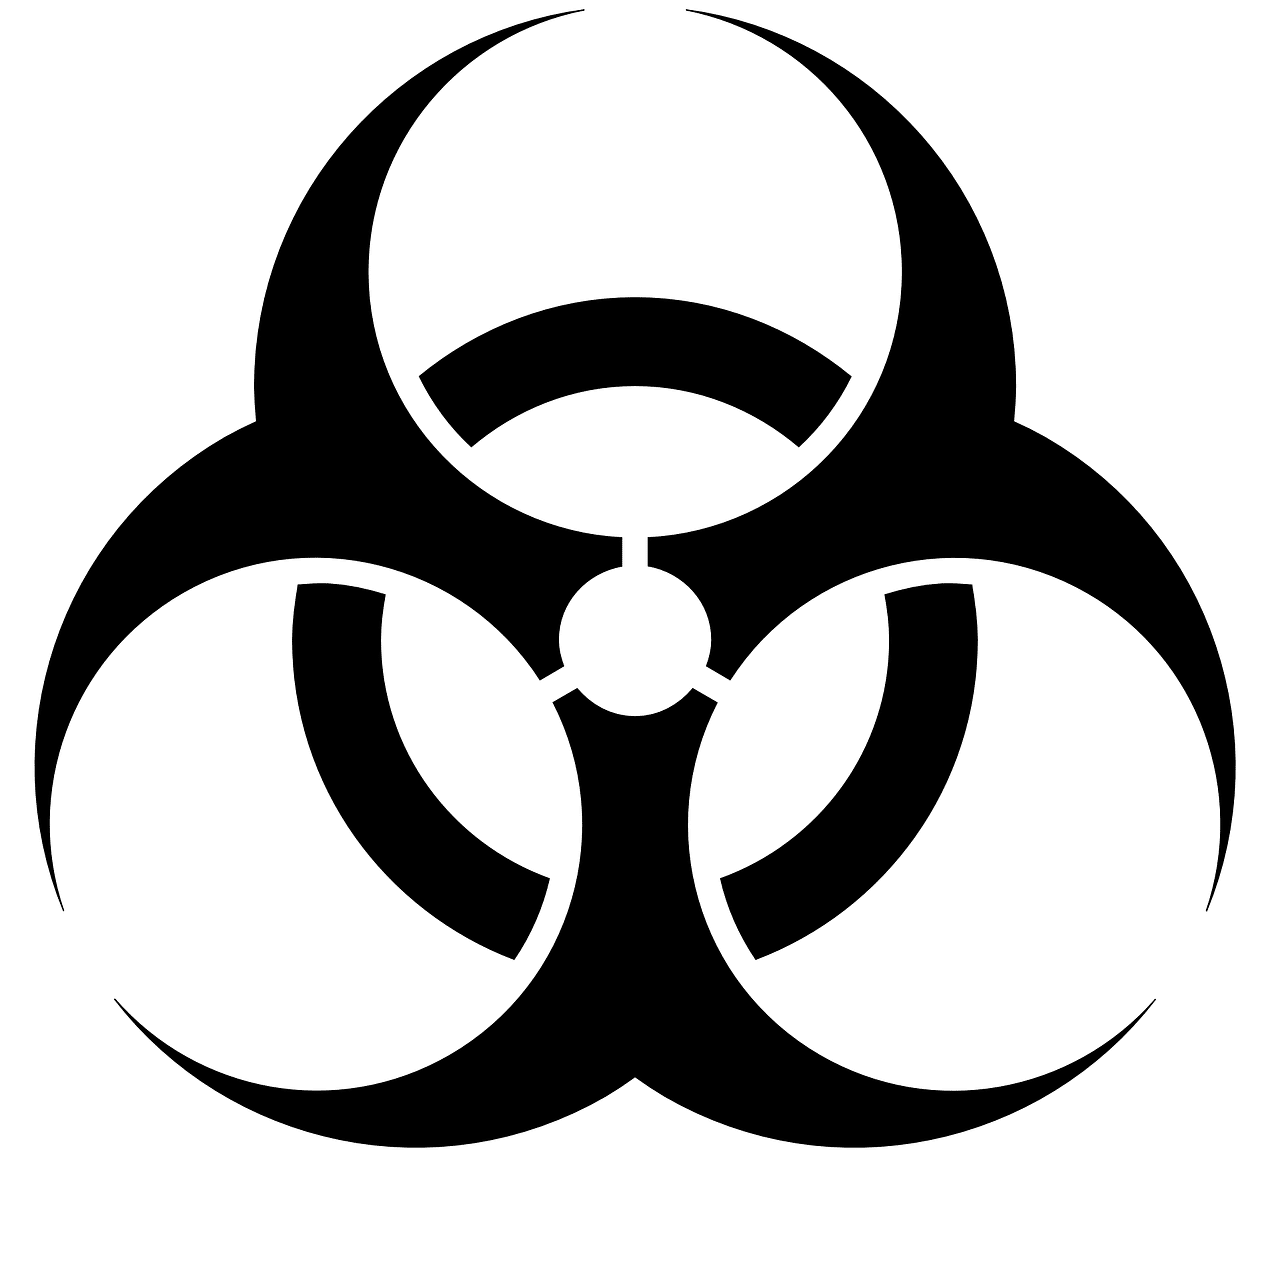 The obscurity of medical waste in america healthcare waste biohazard 3088671280 1 biocorpaavc